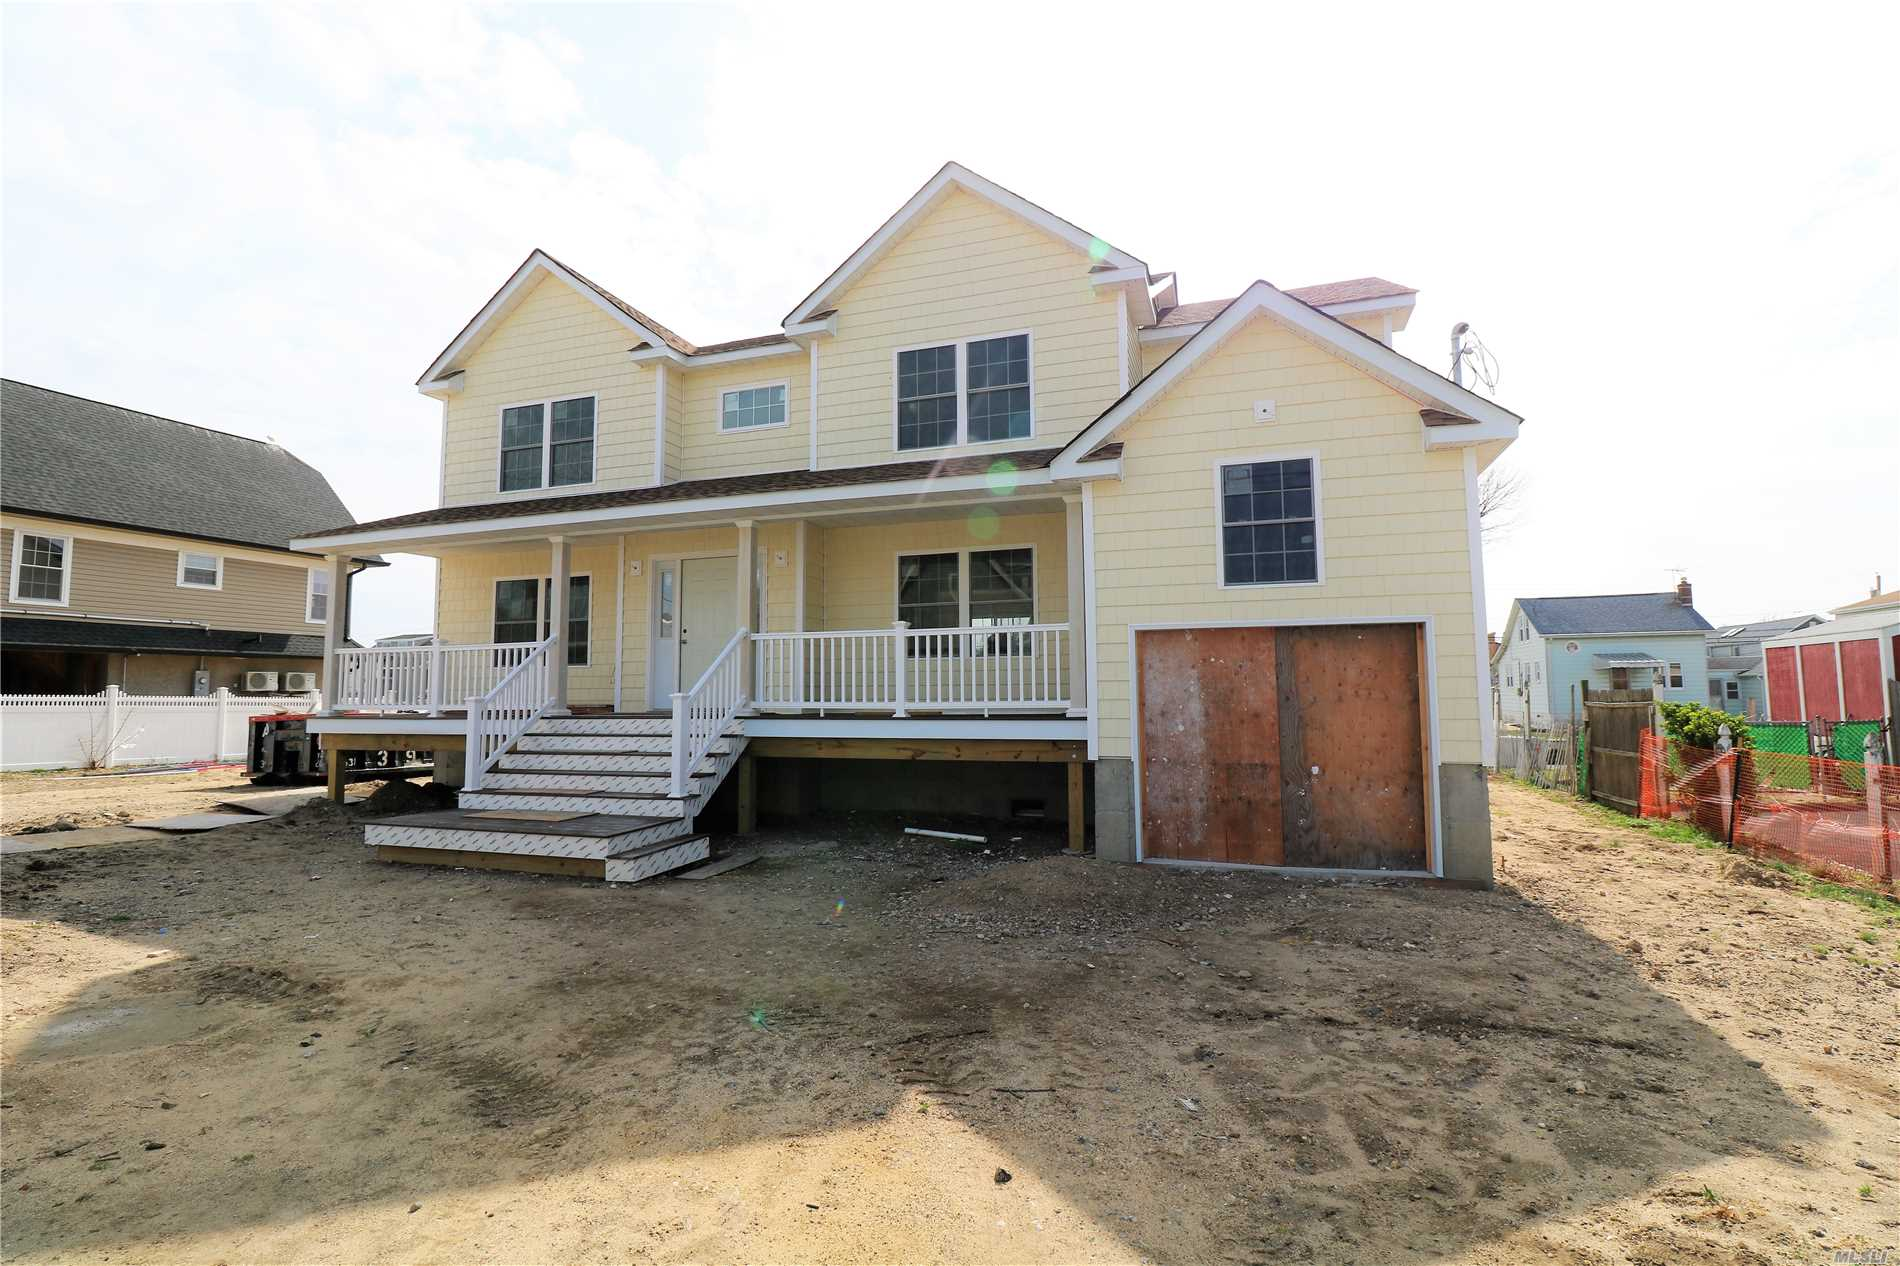 Bring Your Boat!! Brand New Elevated. Waterfront Colonial! Gourmet Kitchen W/ High End Stainless Steel Appliances! Open Concept Living! Harwood Floors! Master Bedroom W/ En Suite! 3 Additional Brs & Full Bath! Great Yard!